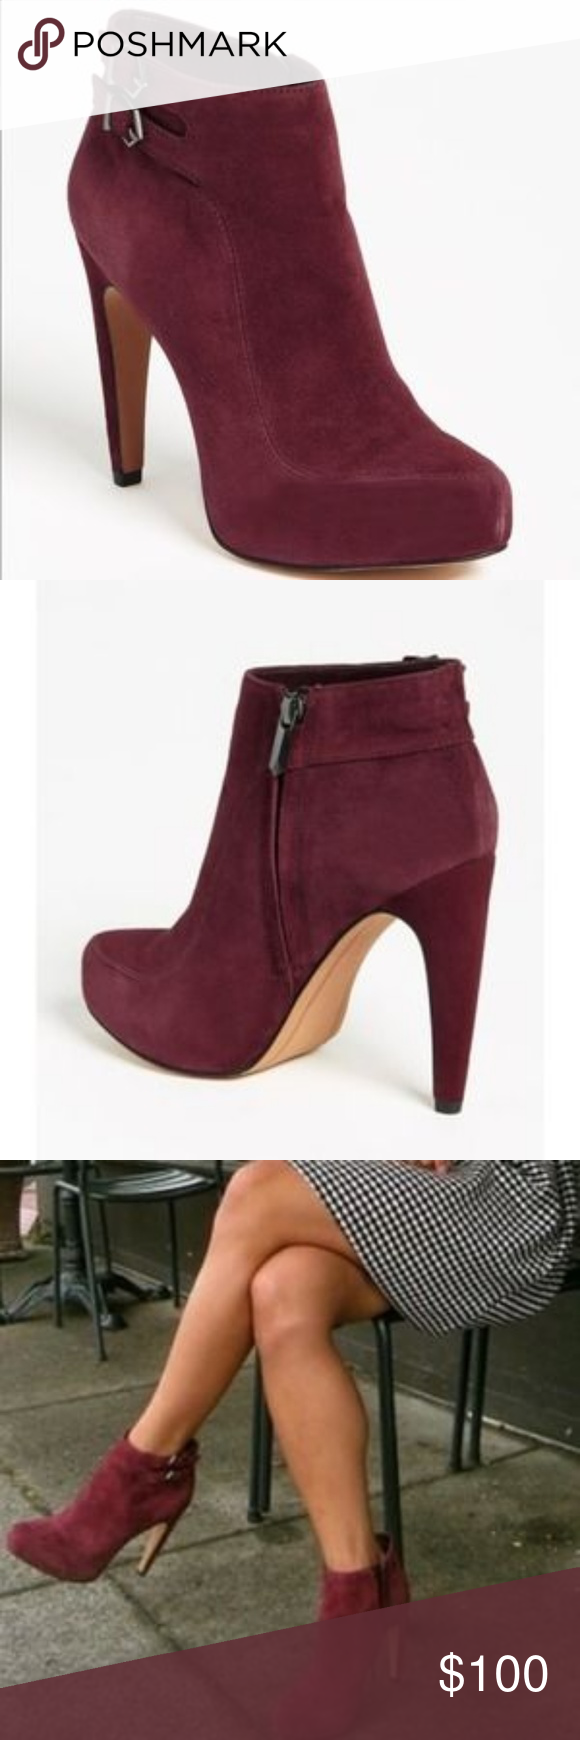 a9bb85d5371b0 Sam Edelman  Kit  ankle boots in burgundy suede Sam Edelman  Kit  ankle  boots in burgundy suede Worn once EUC. Very unnoticeable spots and scuff.  color ...